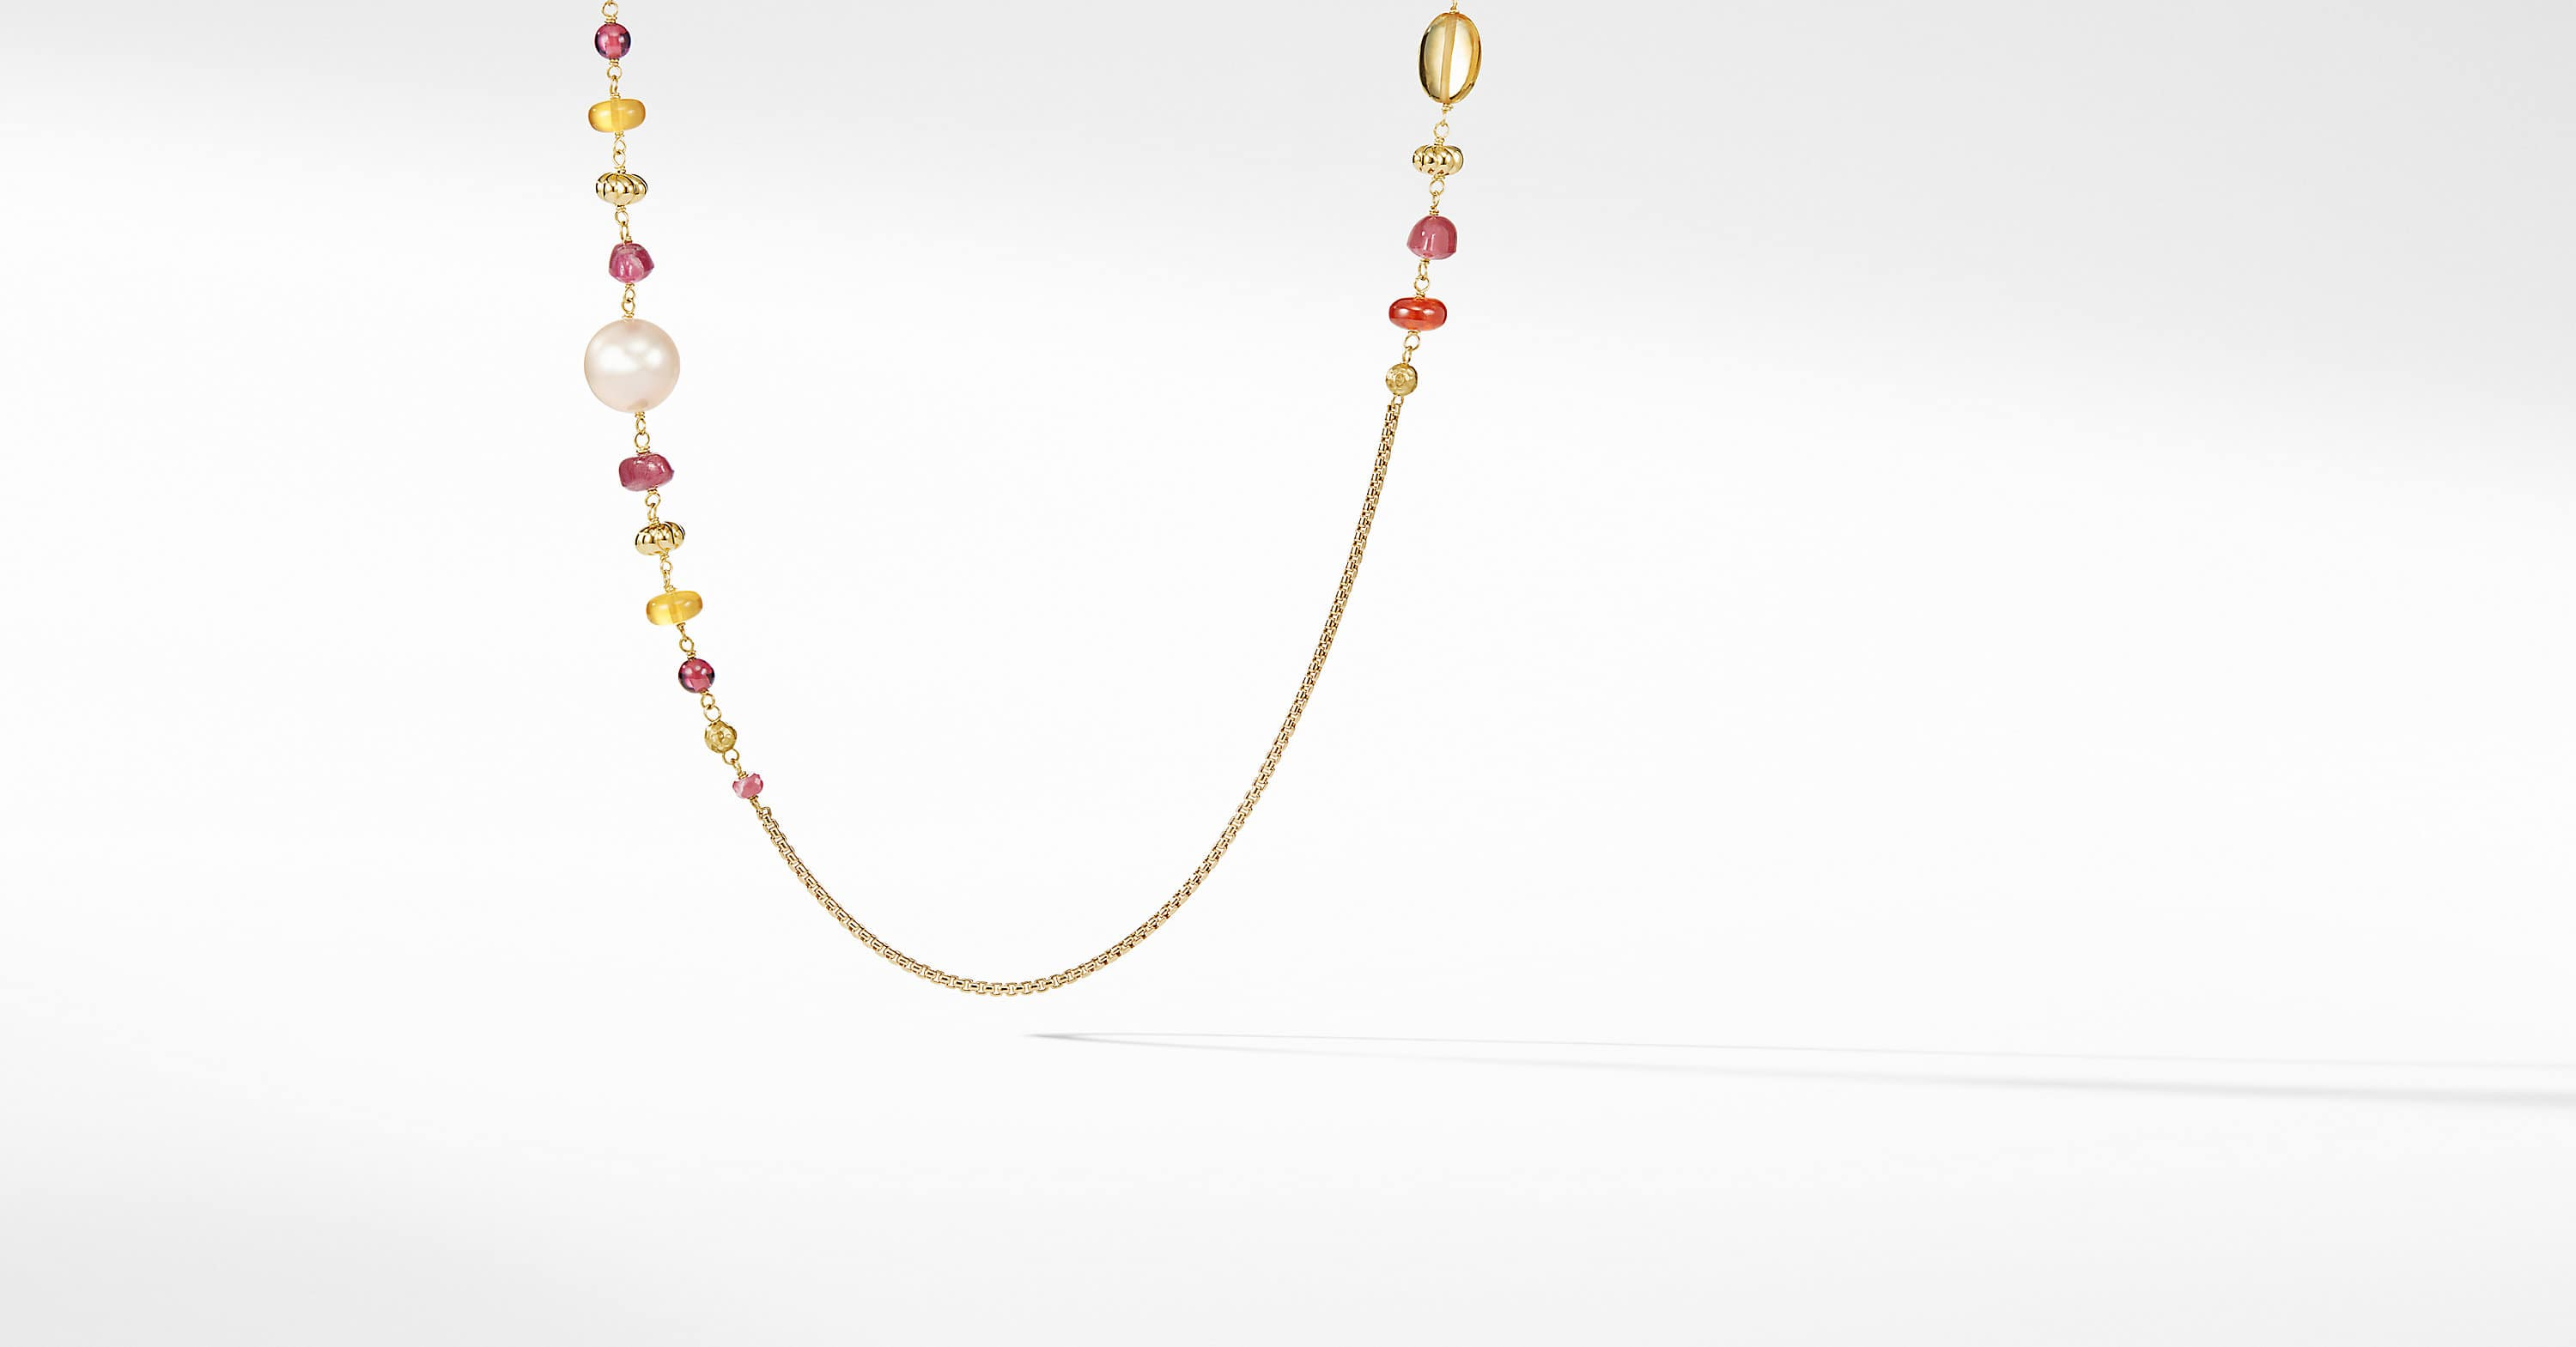 Bijoux Bead and Chain Necklace in 18K Gold